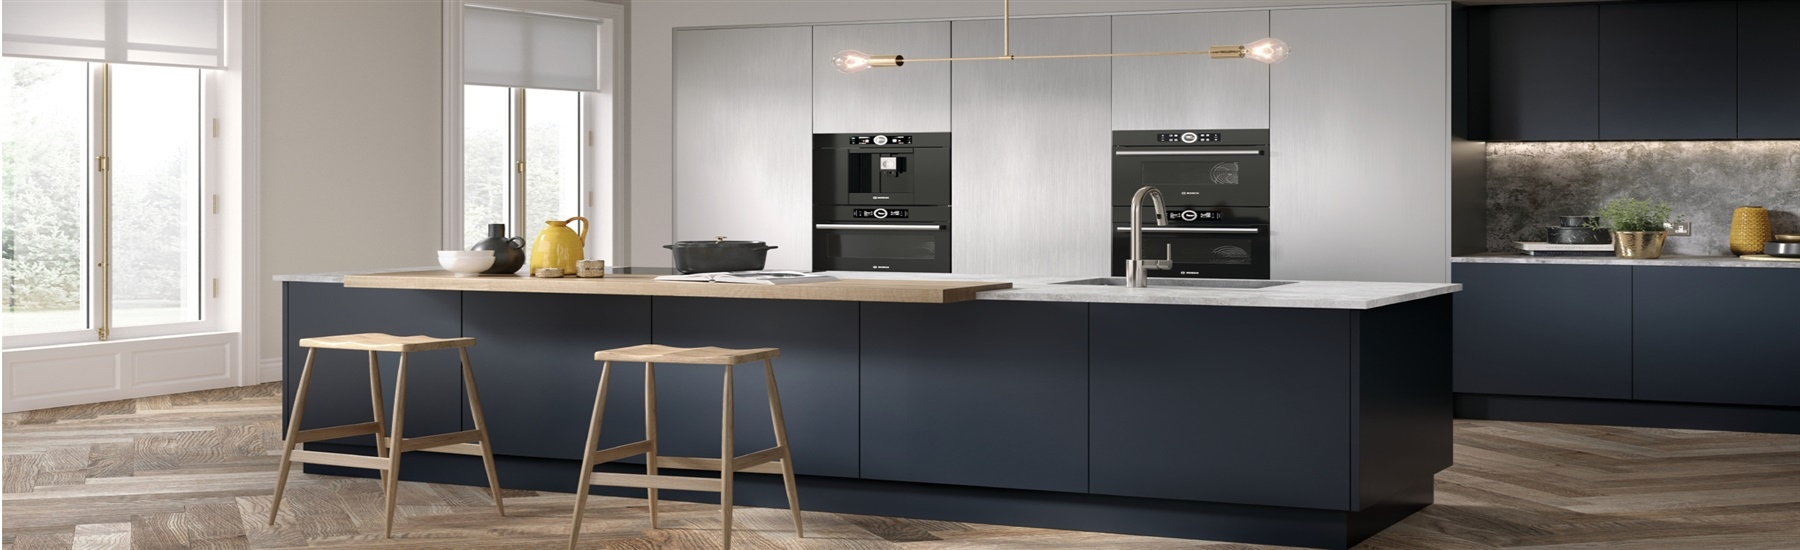 Zurfiz_Indigo_Blu_and_Grey_Kitchen